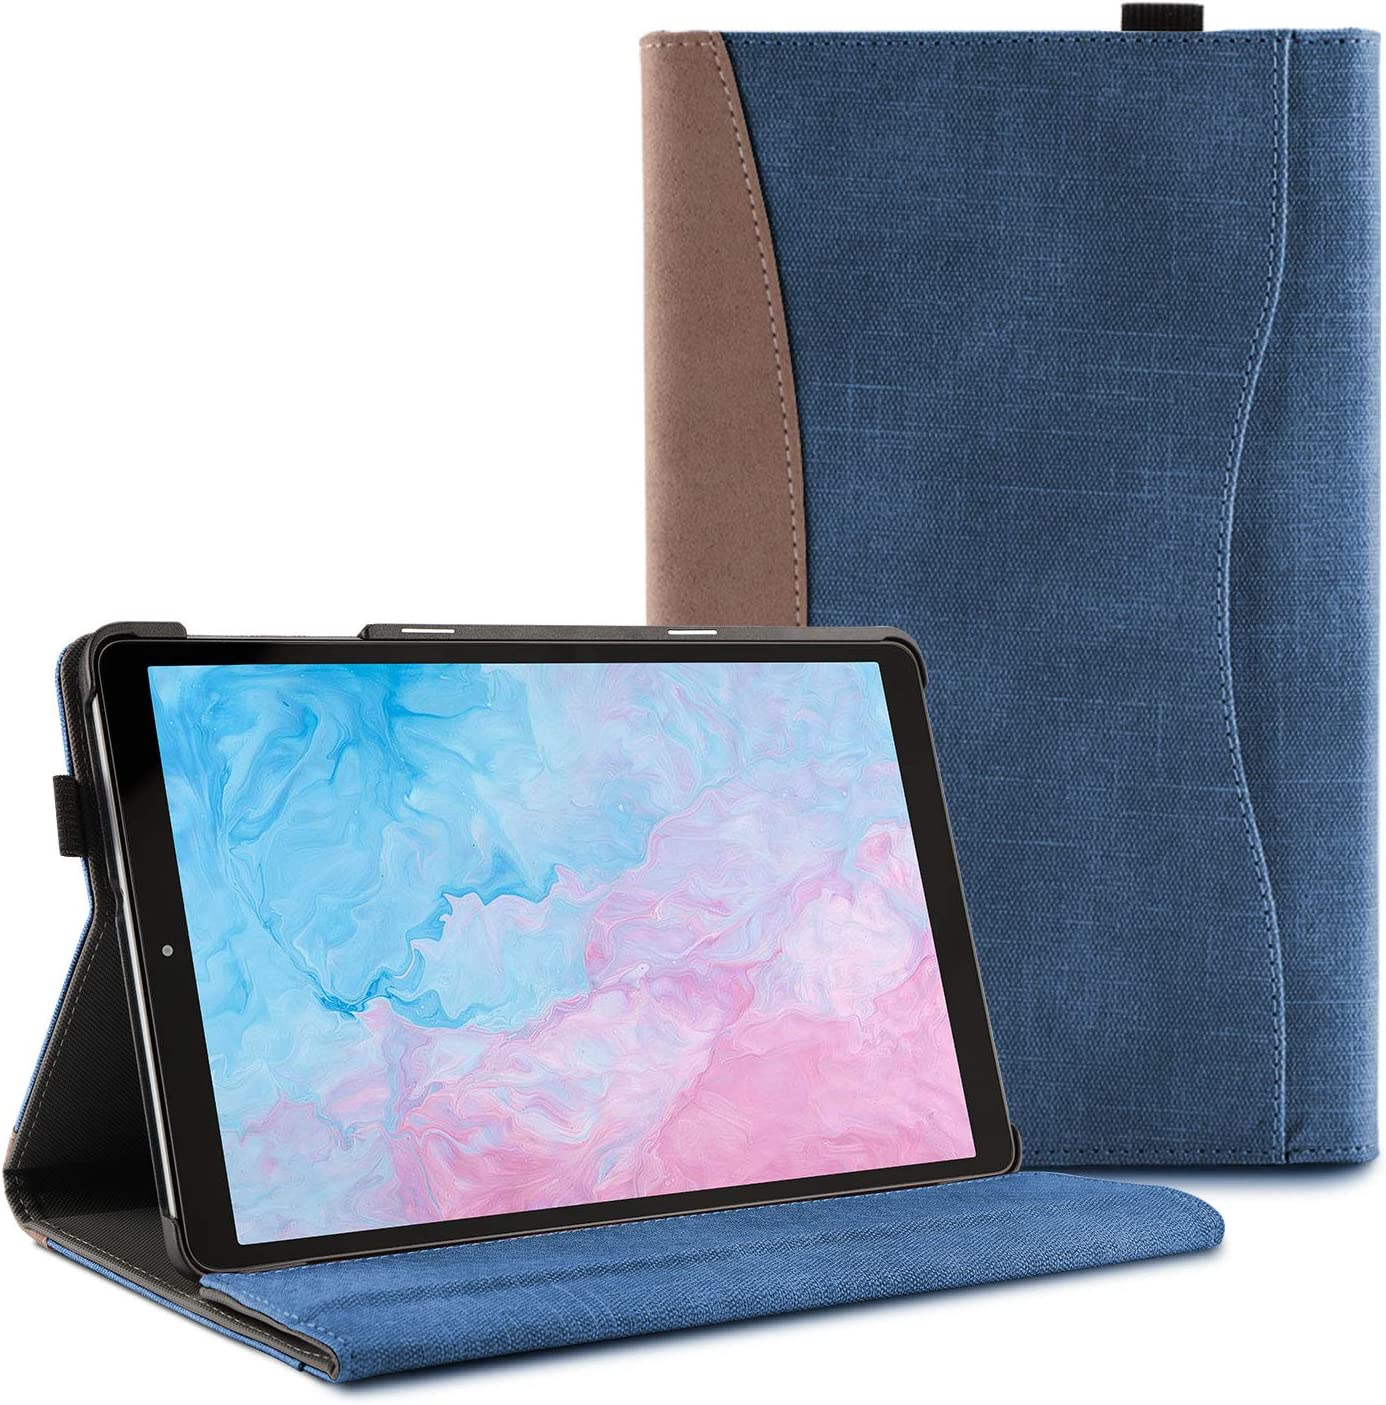 Premium Leather Business Stand Folio Cover Ztotop Case for Samsung Galaxy Tab A 10.1 2019 Black for Samsung Galaxy Tab A 10.1 T510 // T515 2019 Tablet